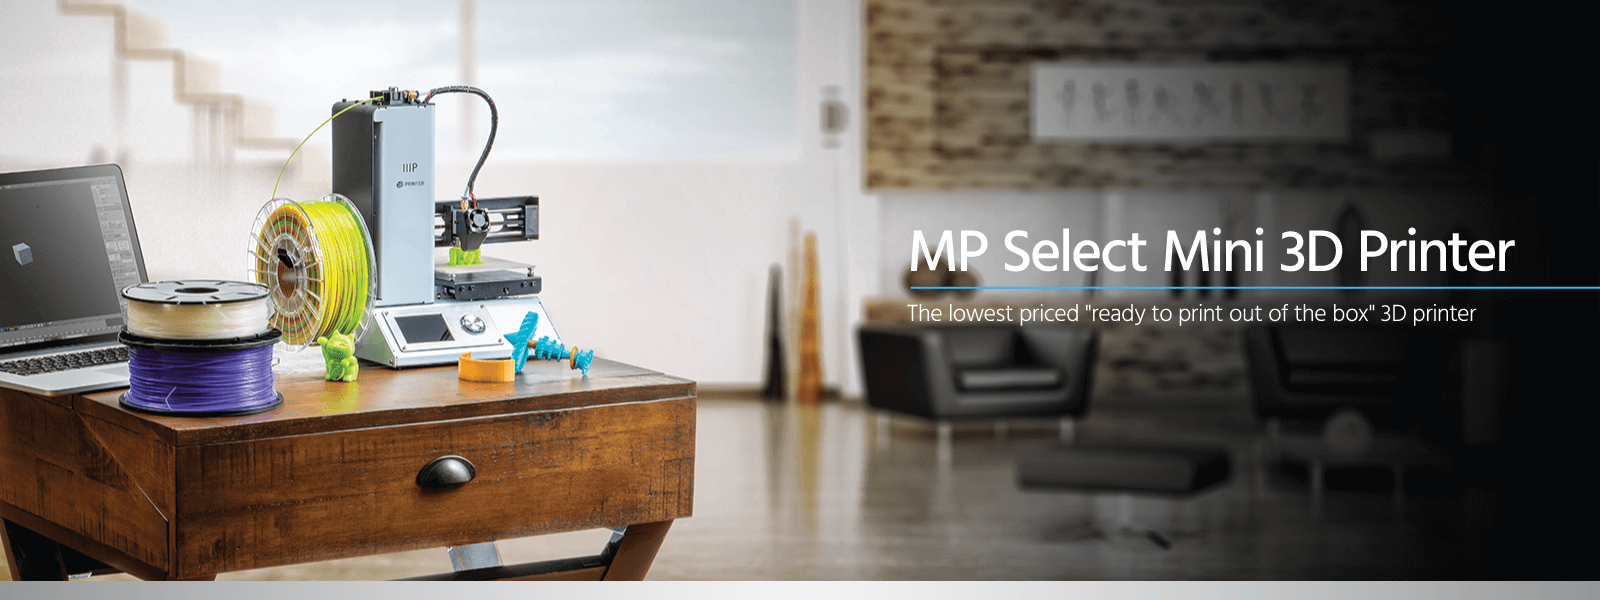 MP Select Mini 3D Printer